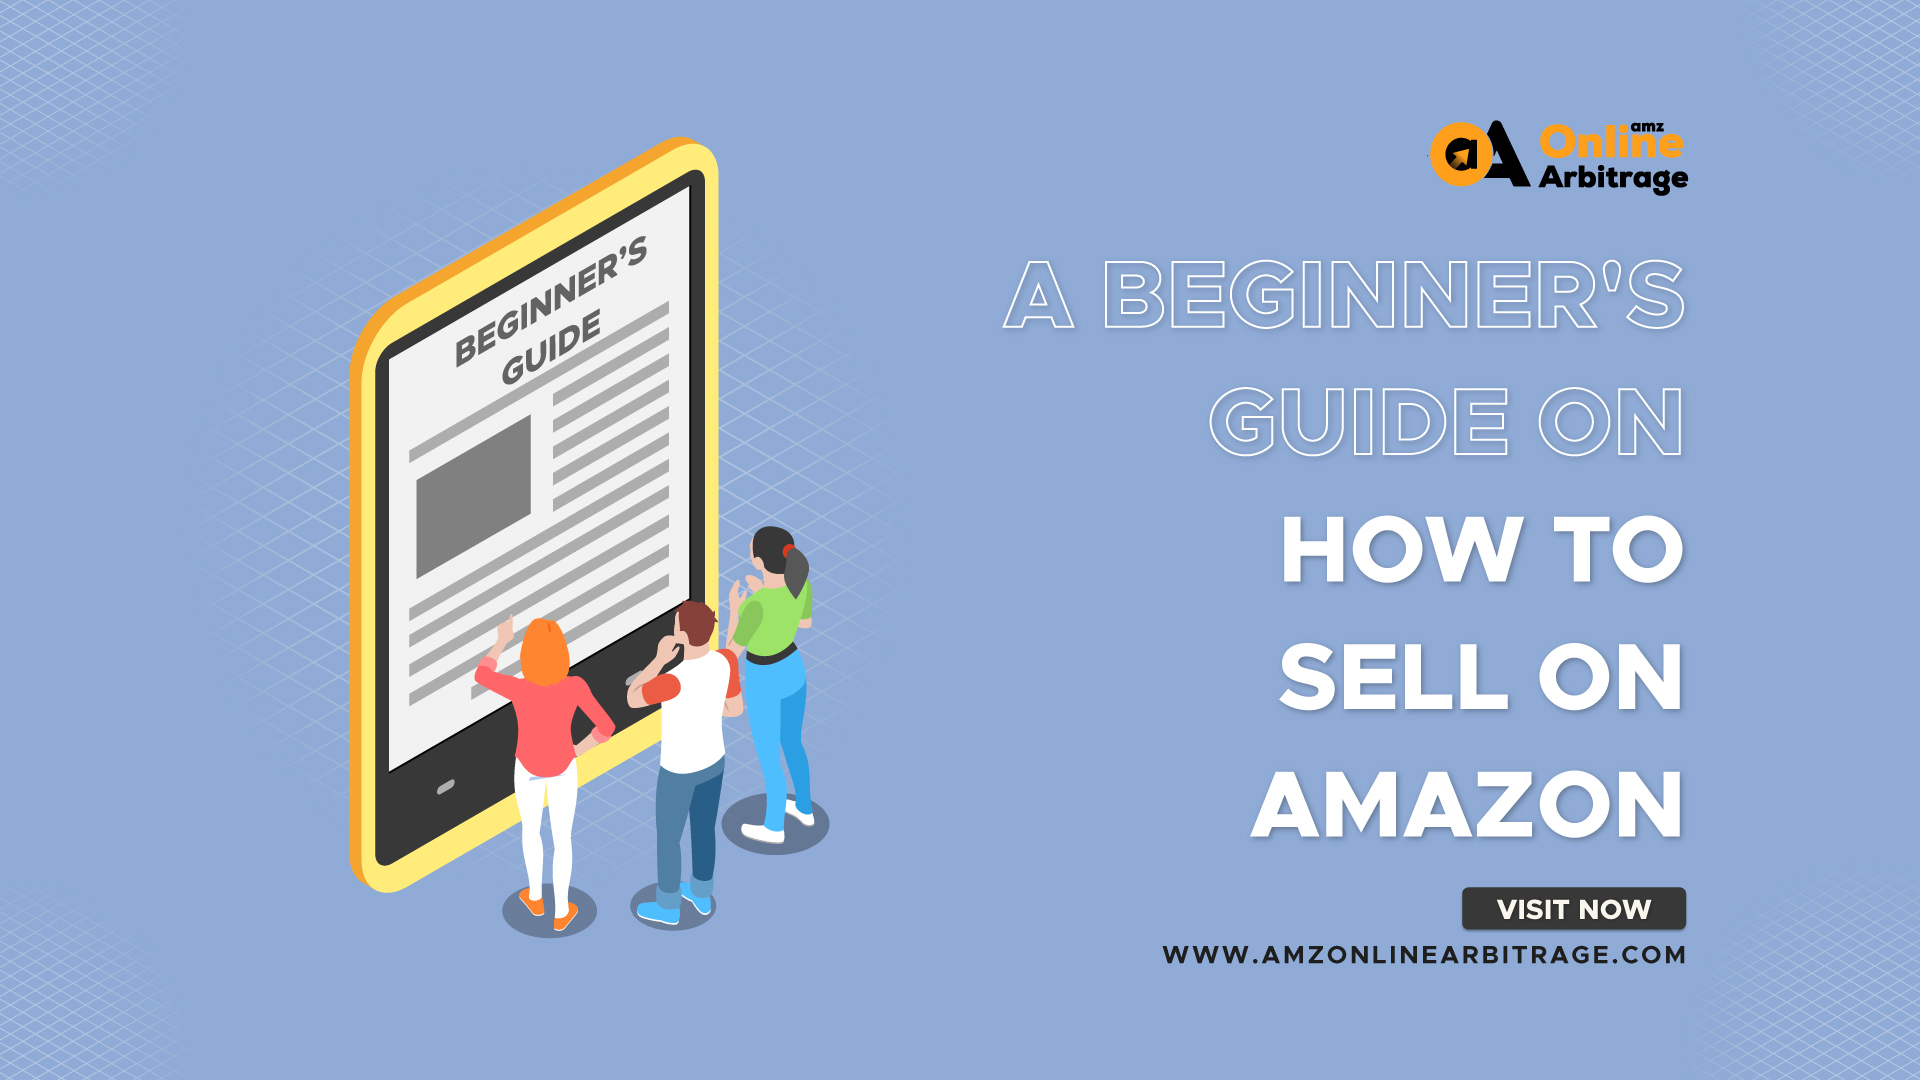 A BEGINNER'S GUIDE ON HOW TO SELL ON AMAZON